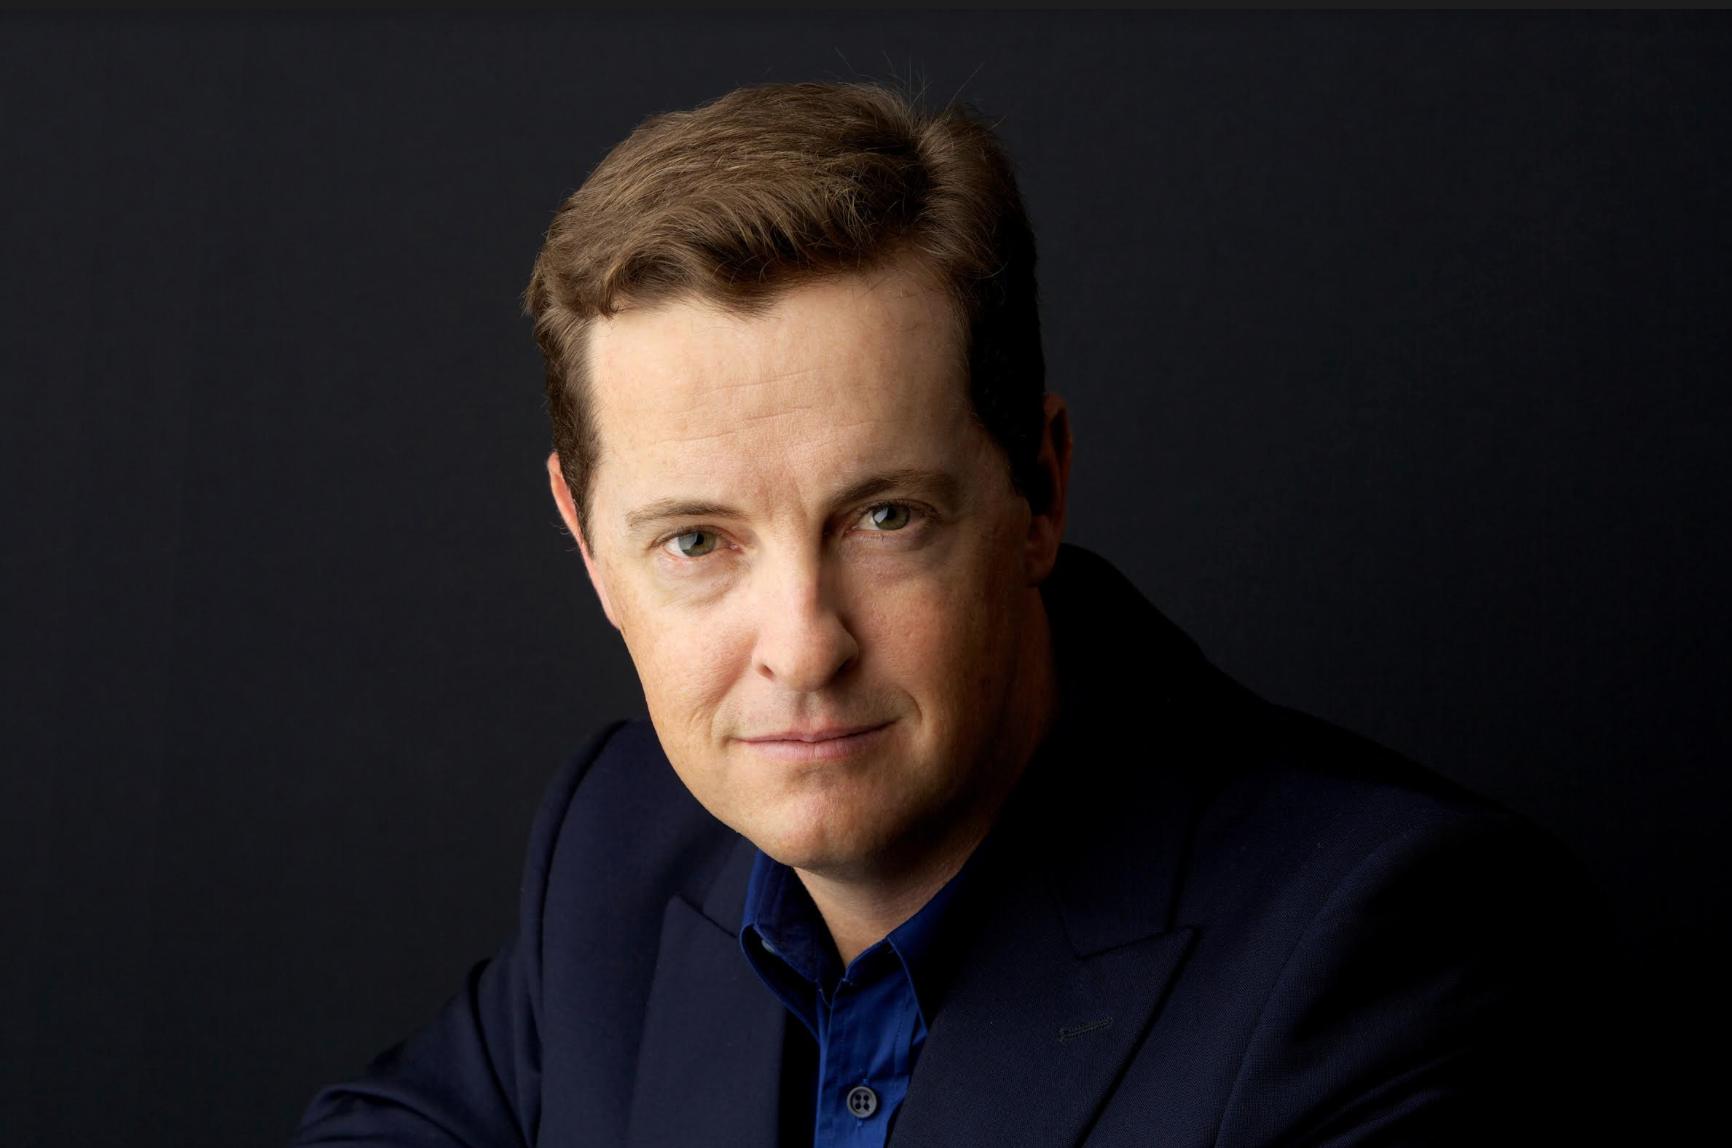 ­MATTHEW REILLY: BESTSELLING AUTHOR